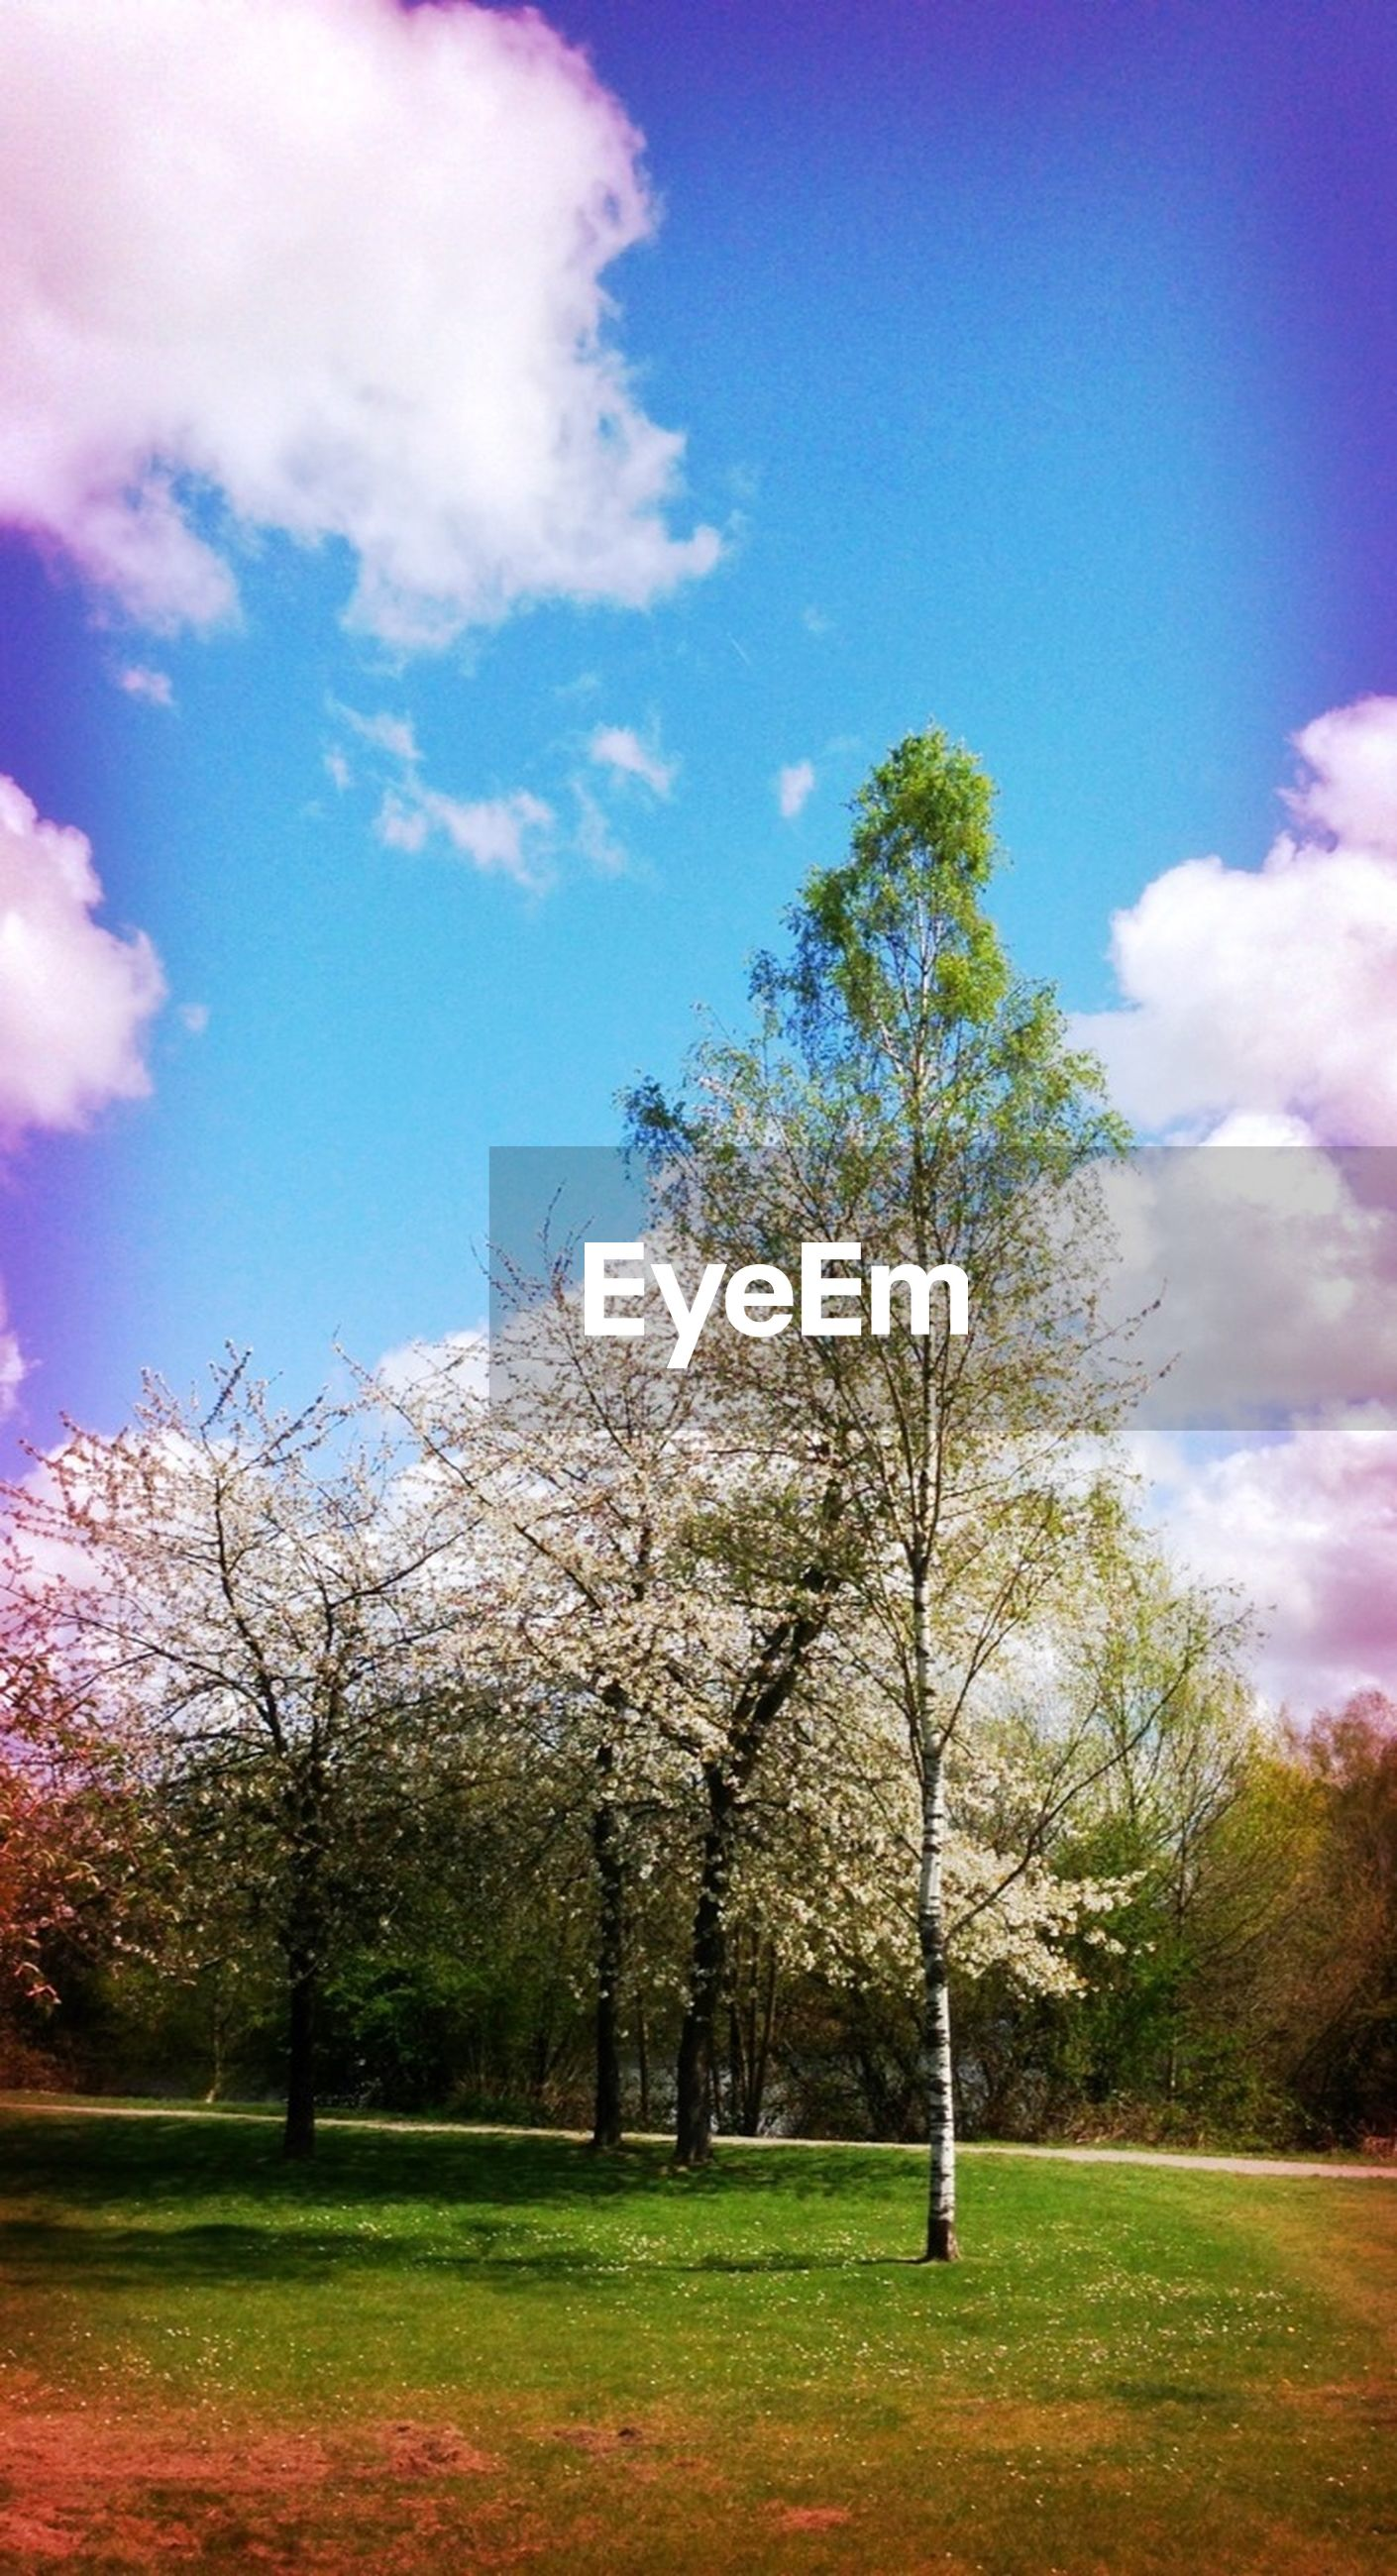 Trees growing on grassy field against sky